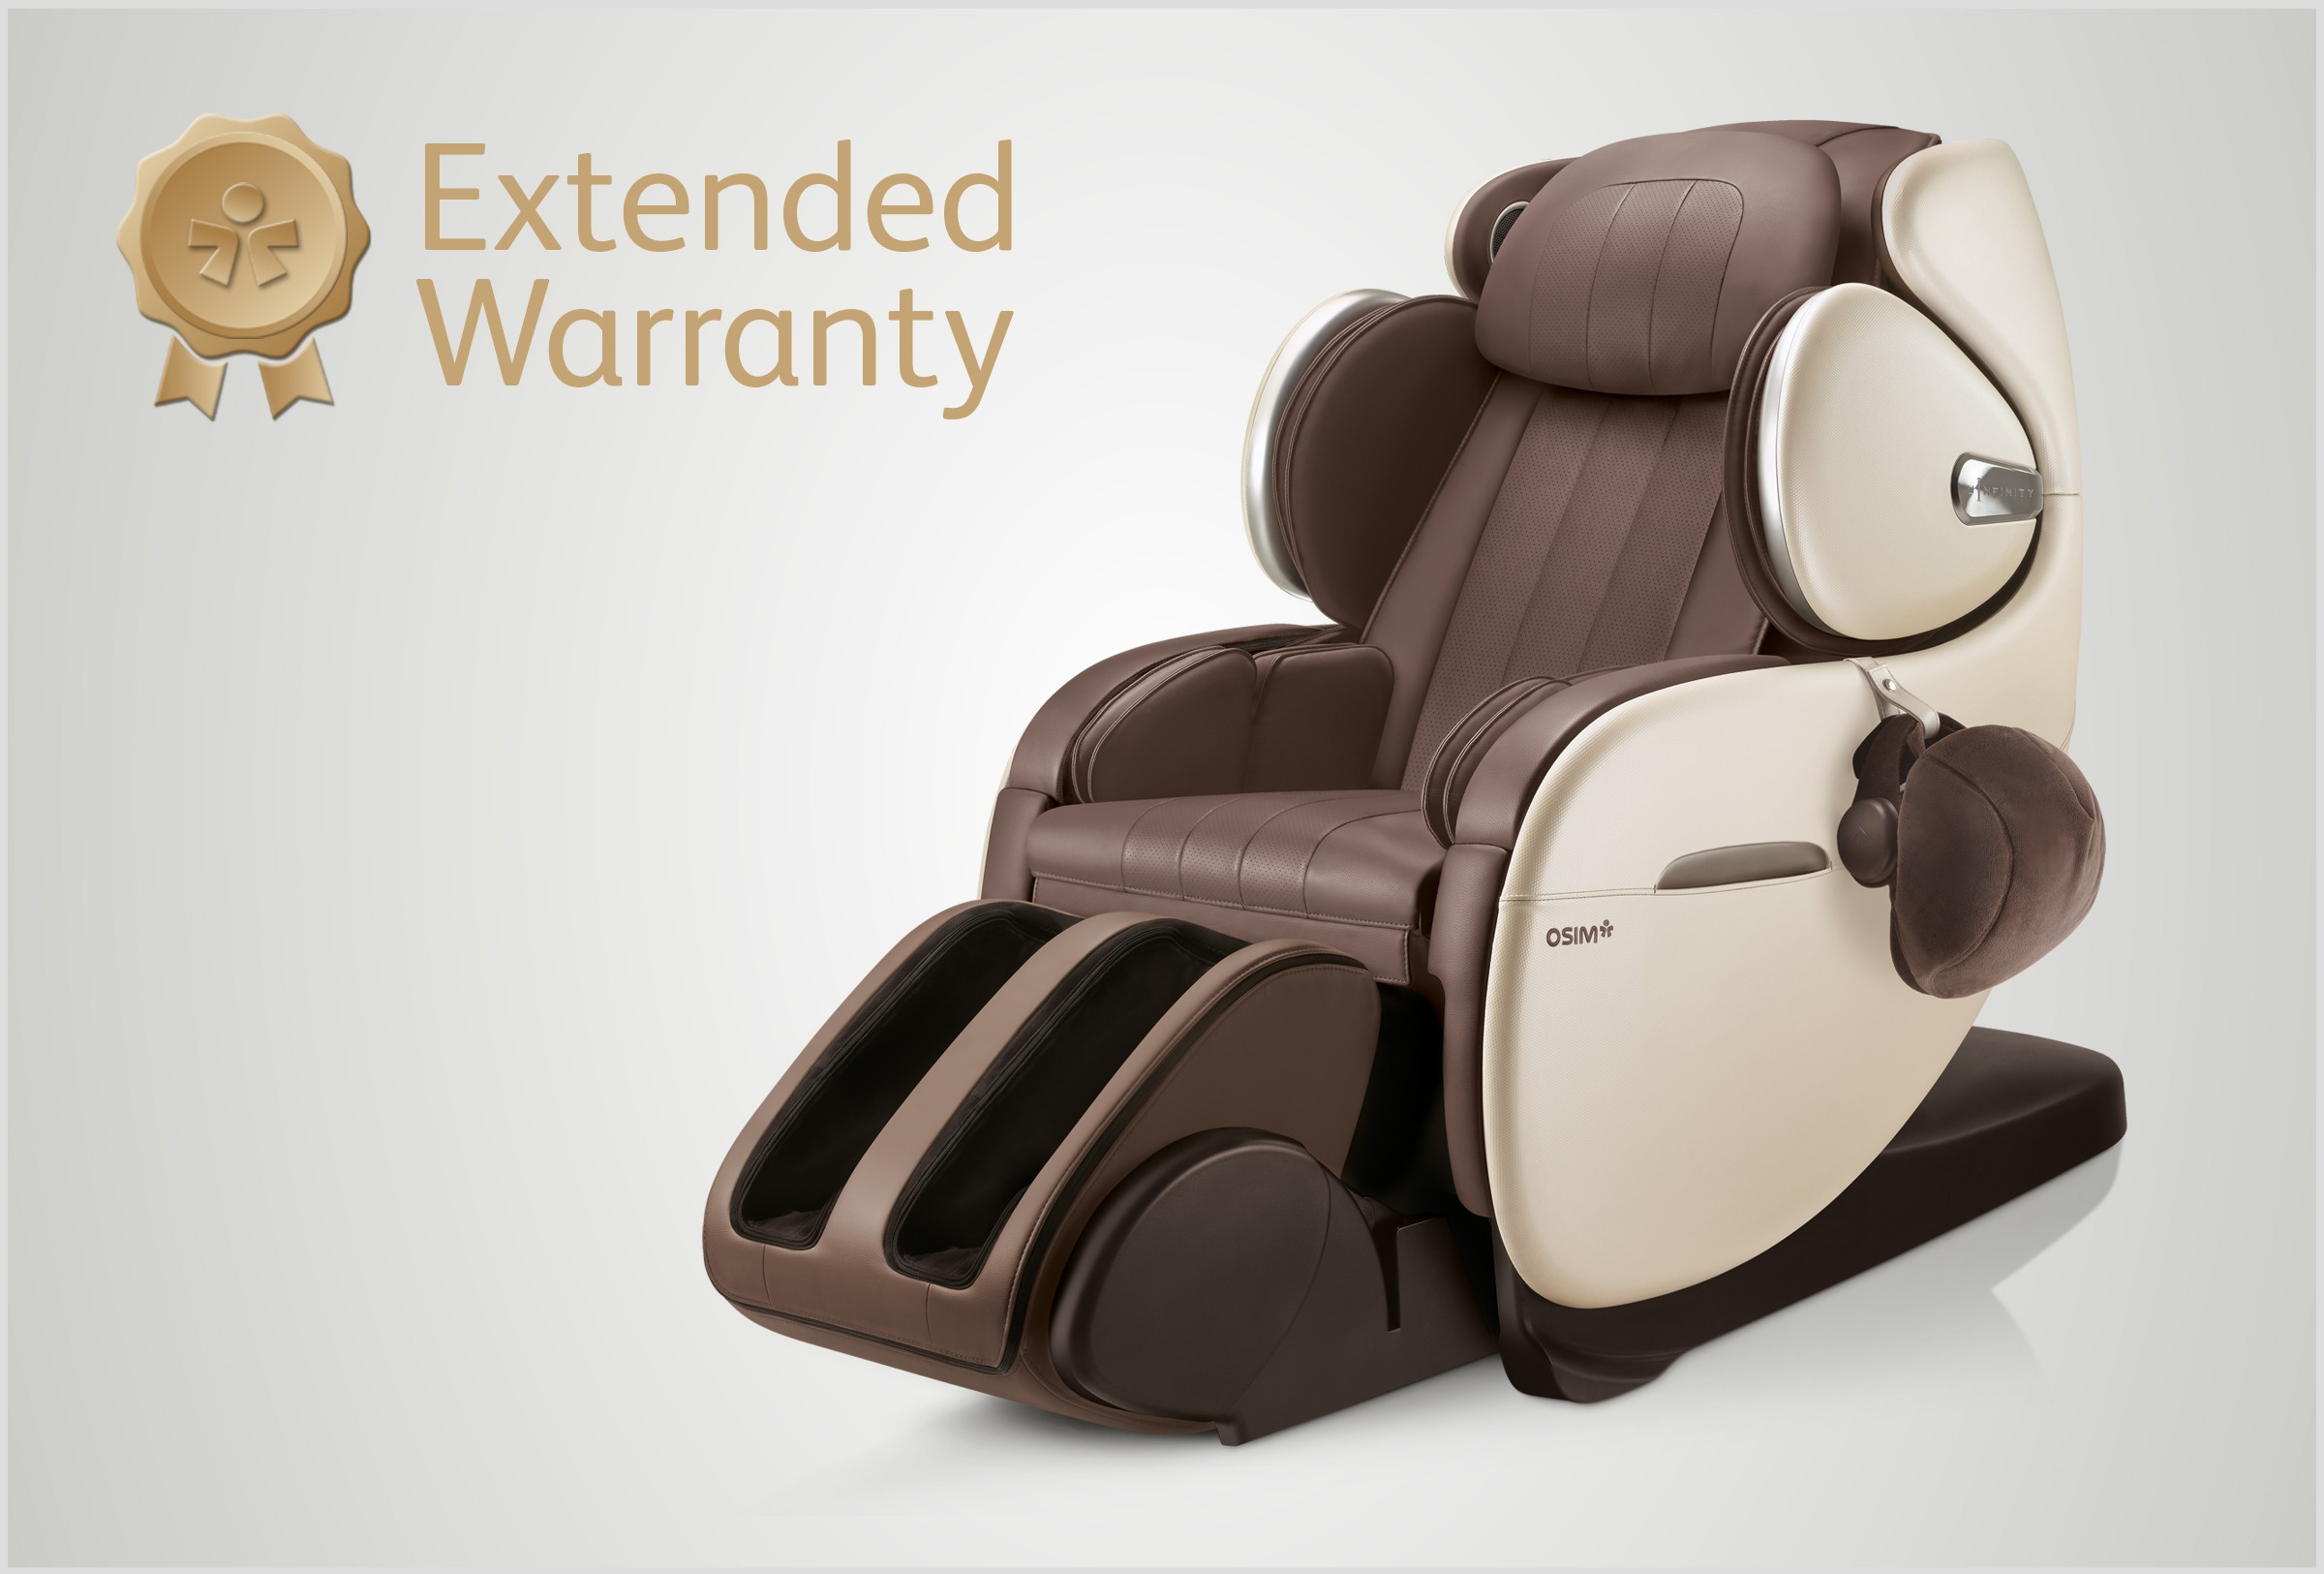 Osim massage chair price - 2 Years Extended Warranty Uinfinity Luxe Download Image Osim Massage Chair Price